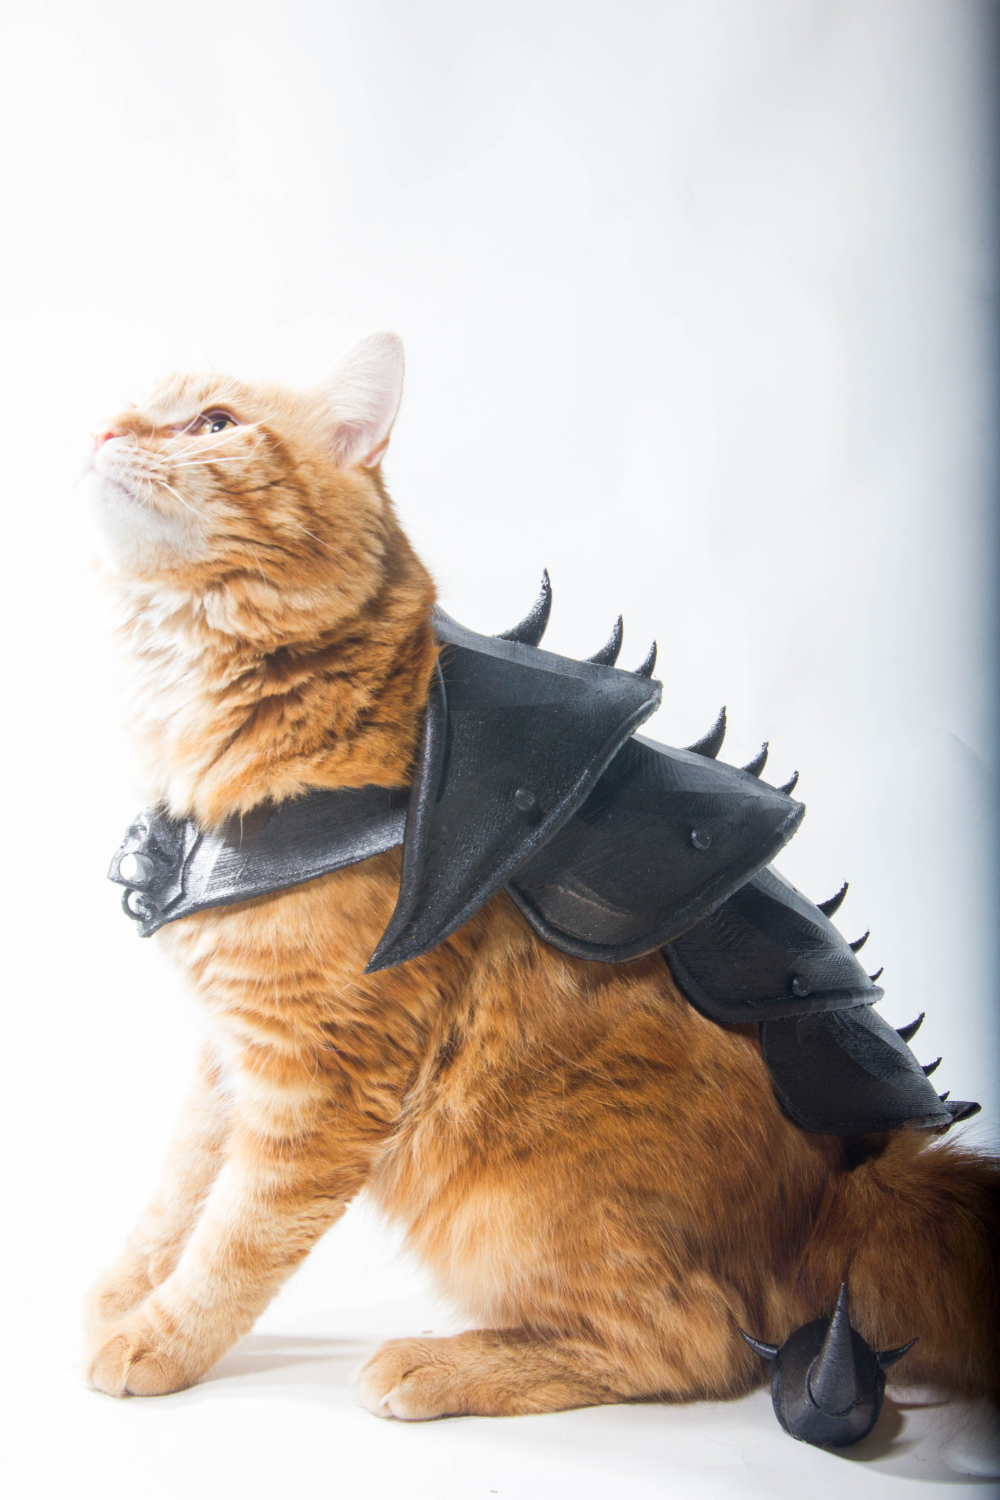 3d Printed Cat Armor By Print That Thing Pinshape In 2020 Cat Armor Cats Tabby Cat Names